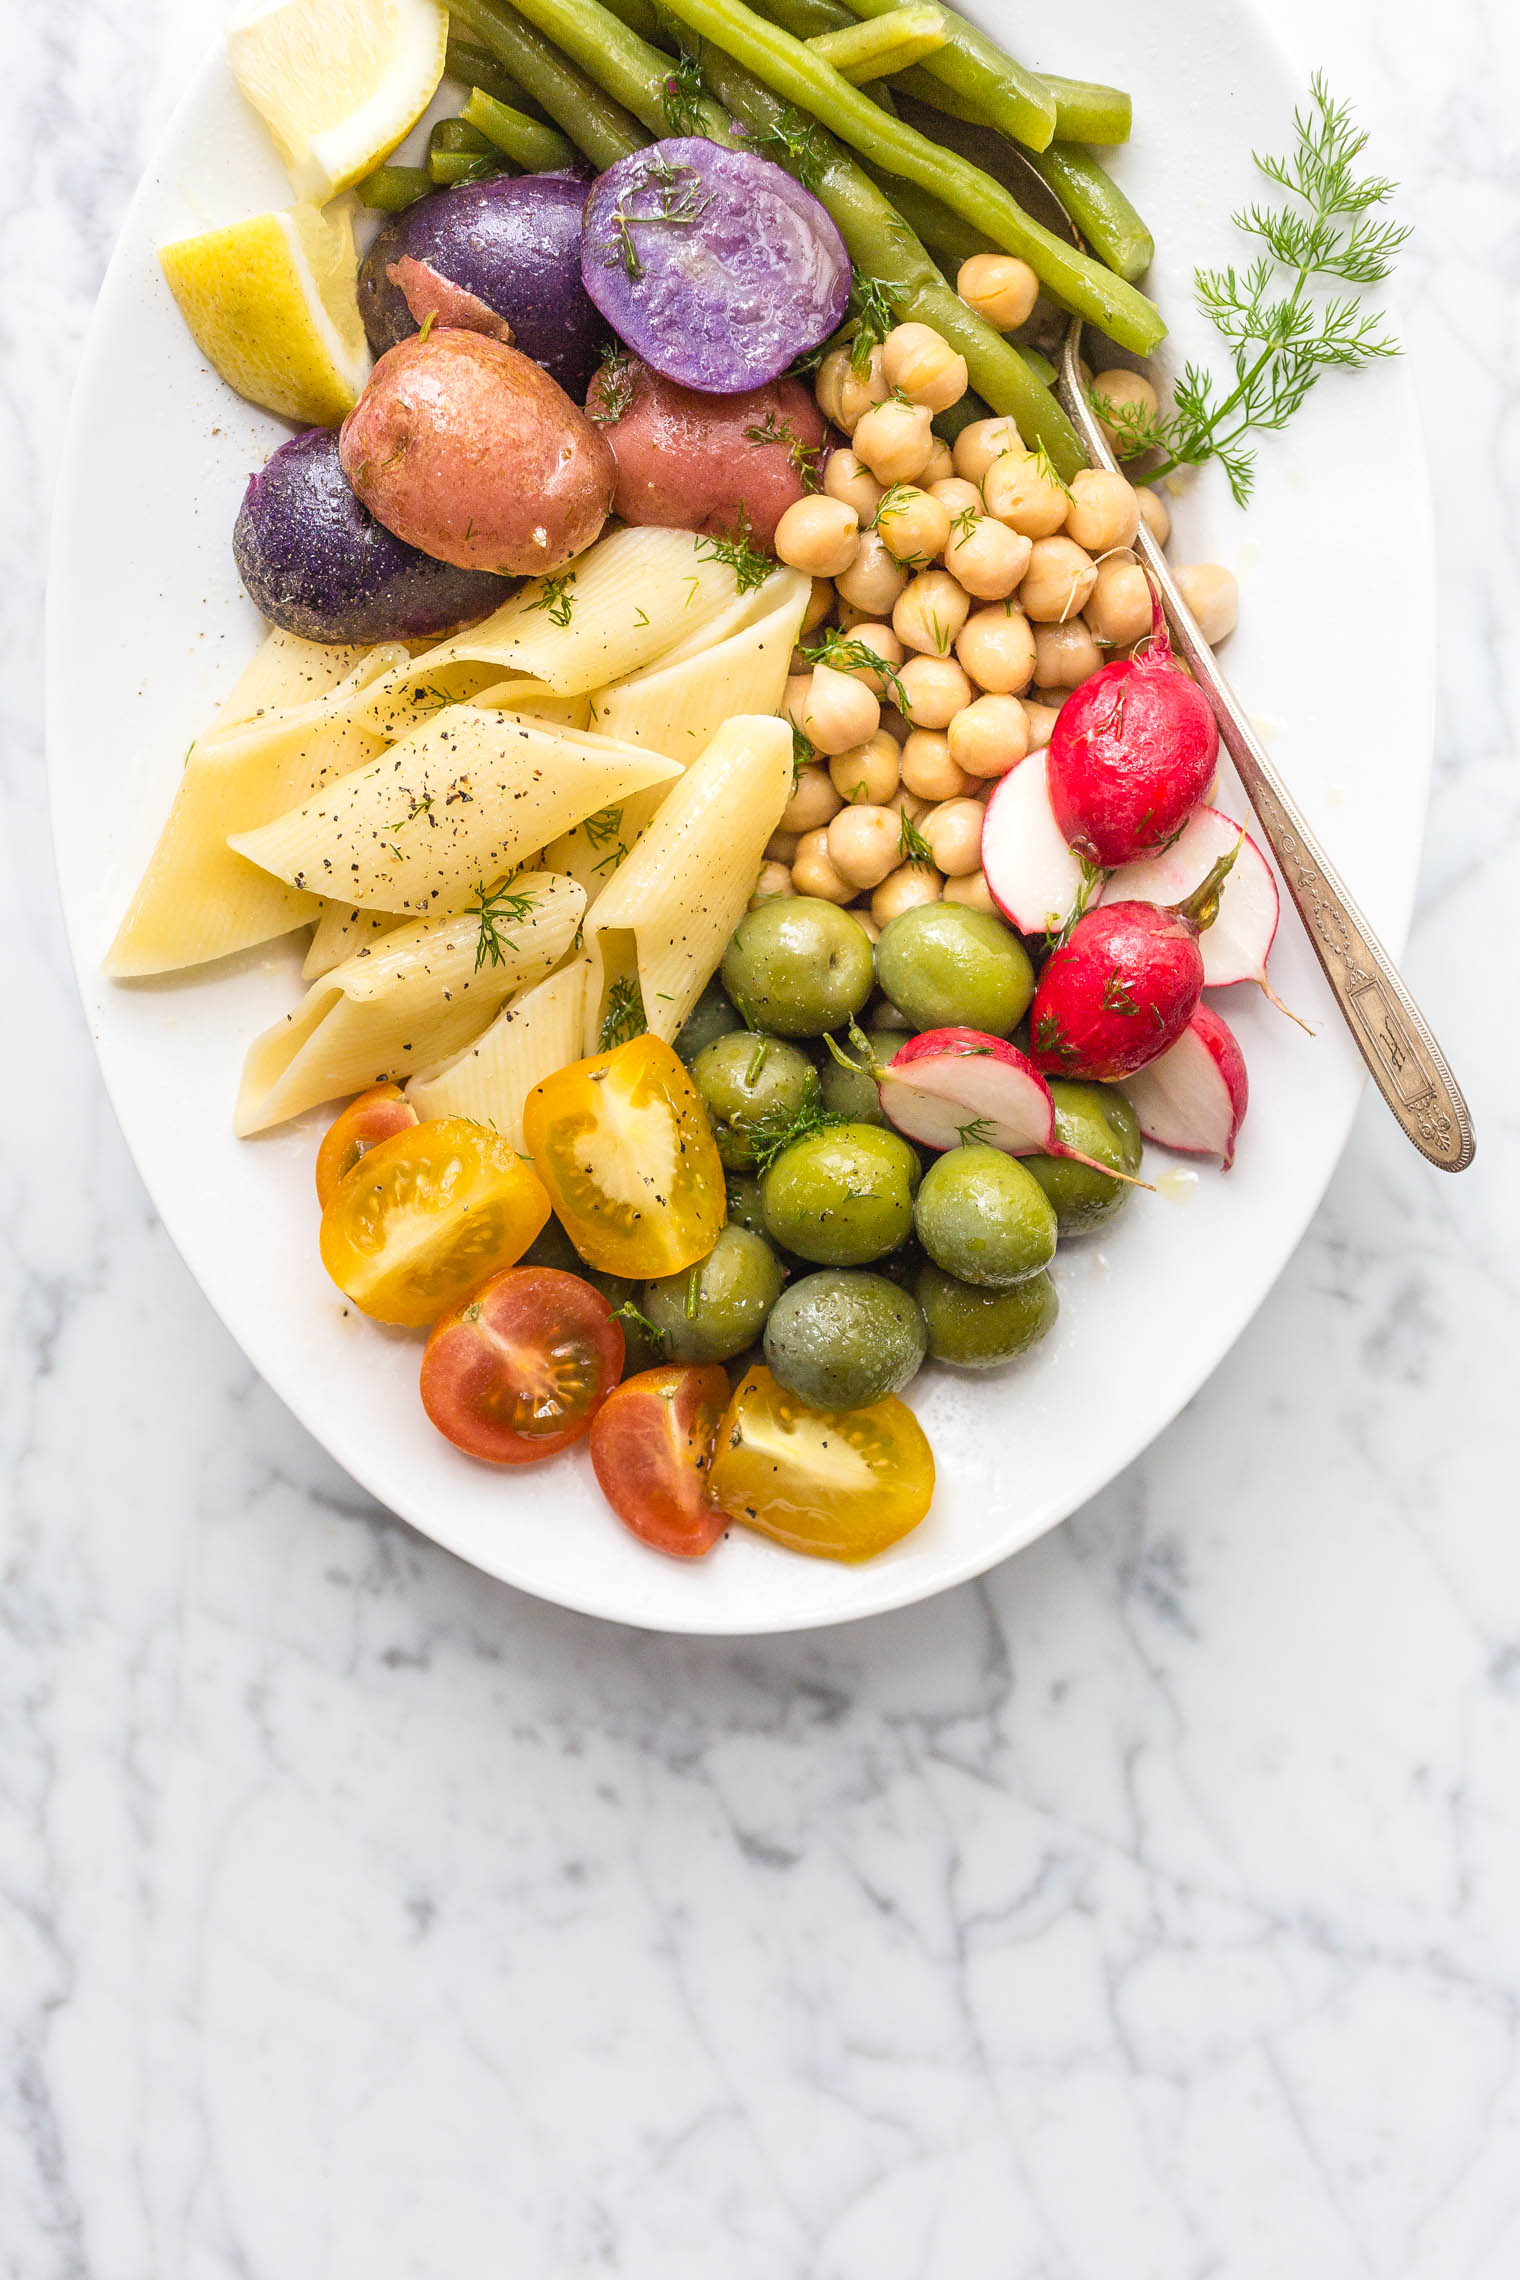 Vegetarian Summer Pasta Salad with Dill Vinaigrette